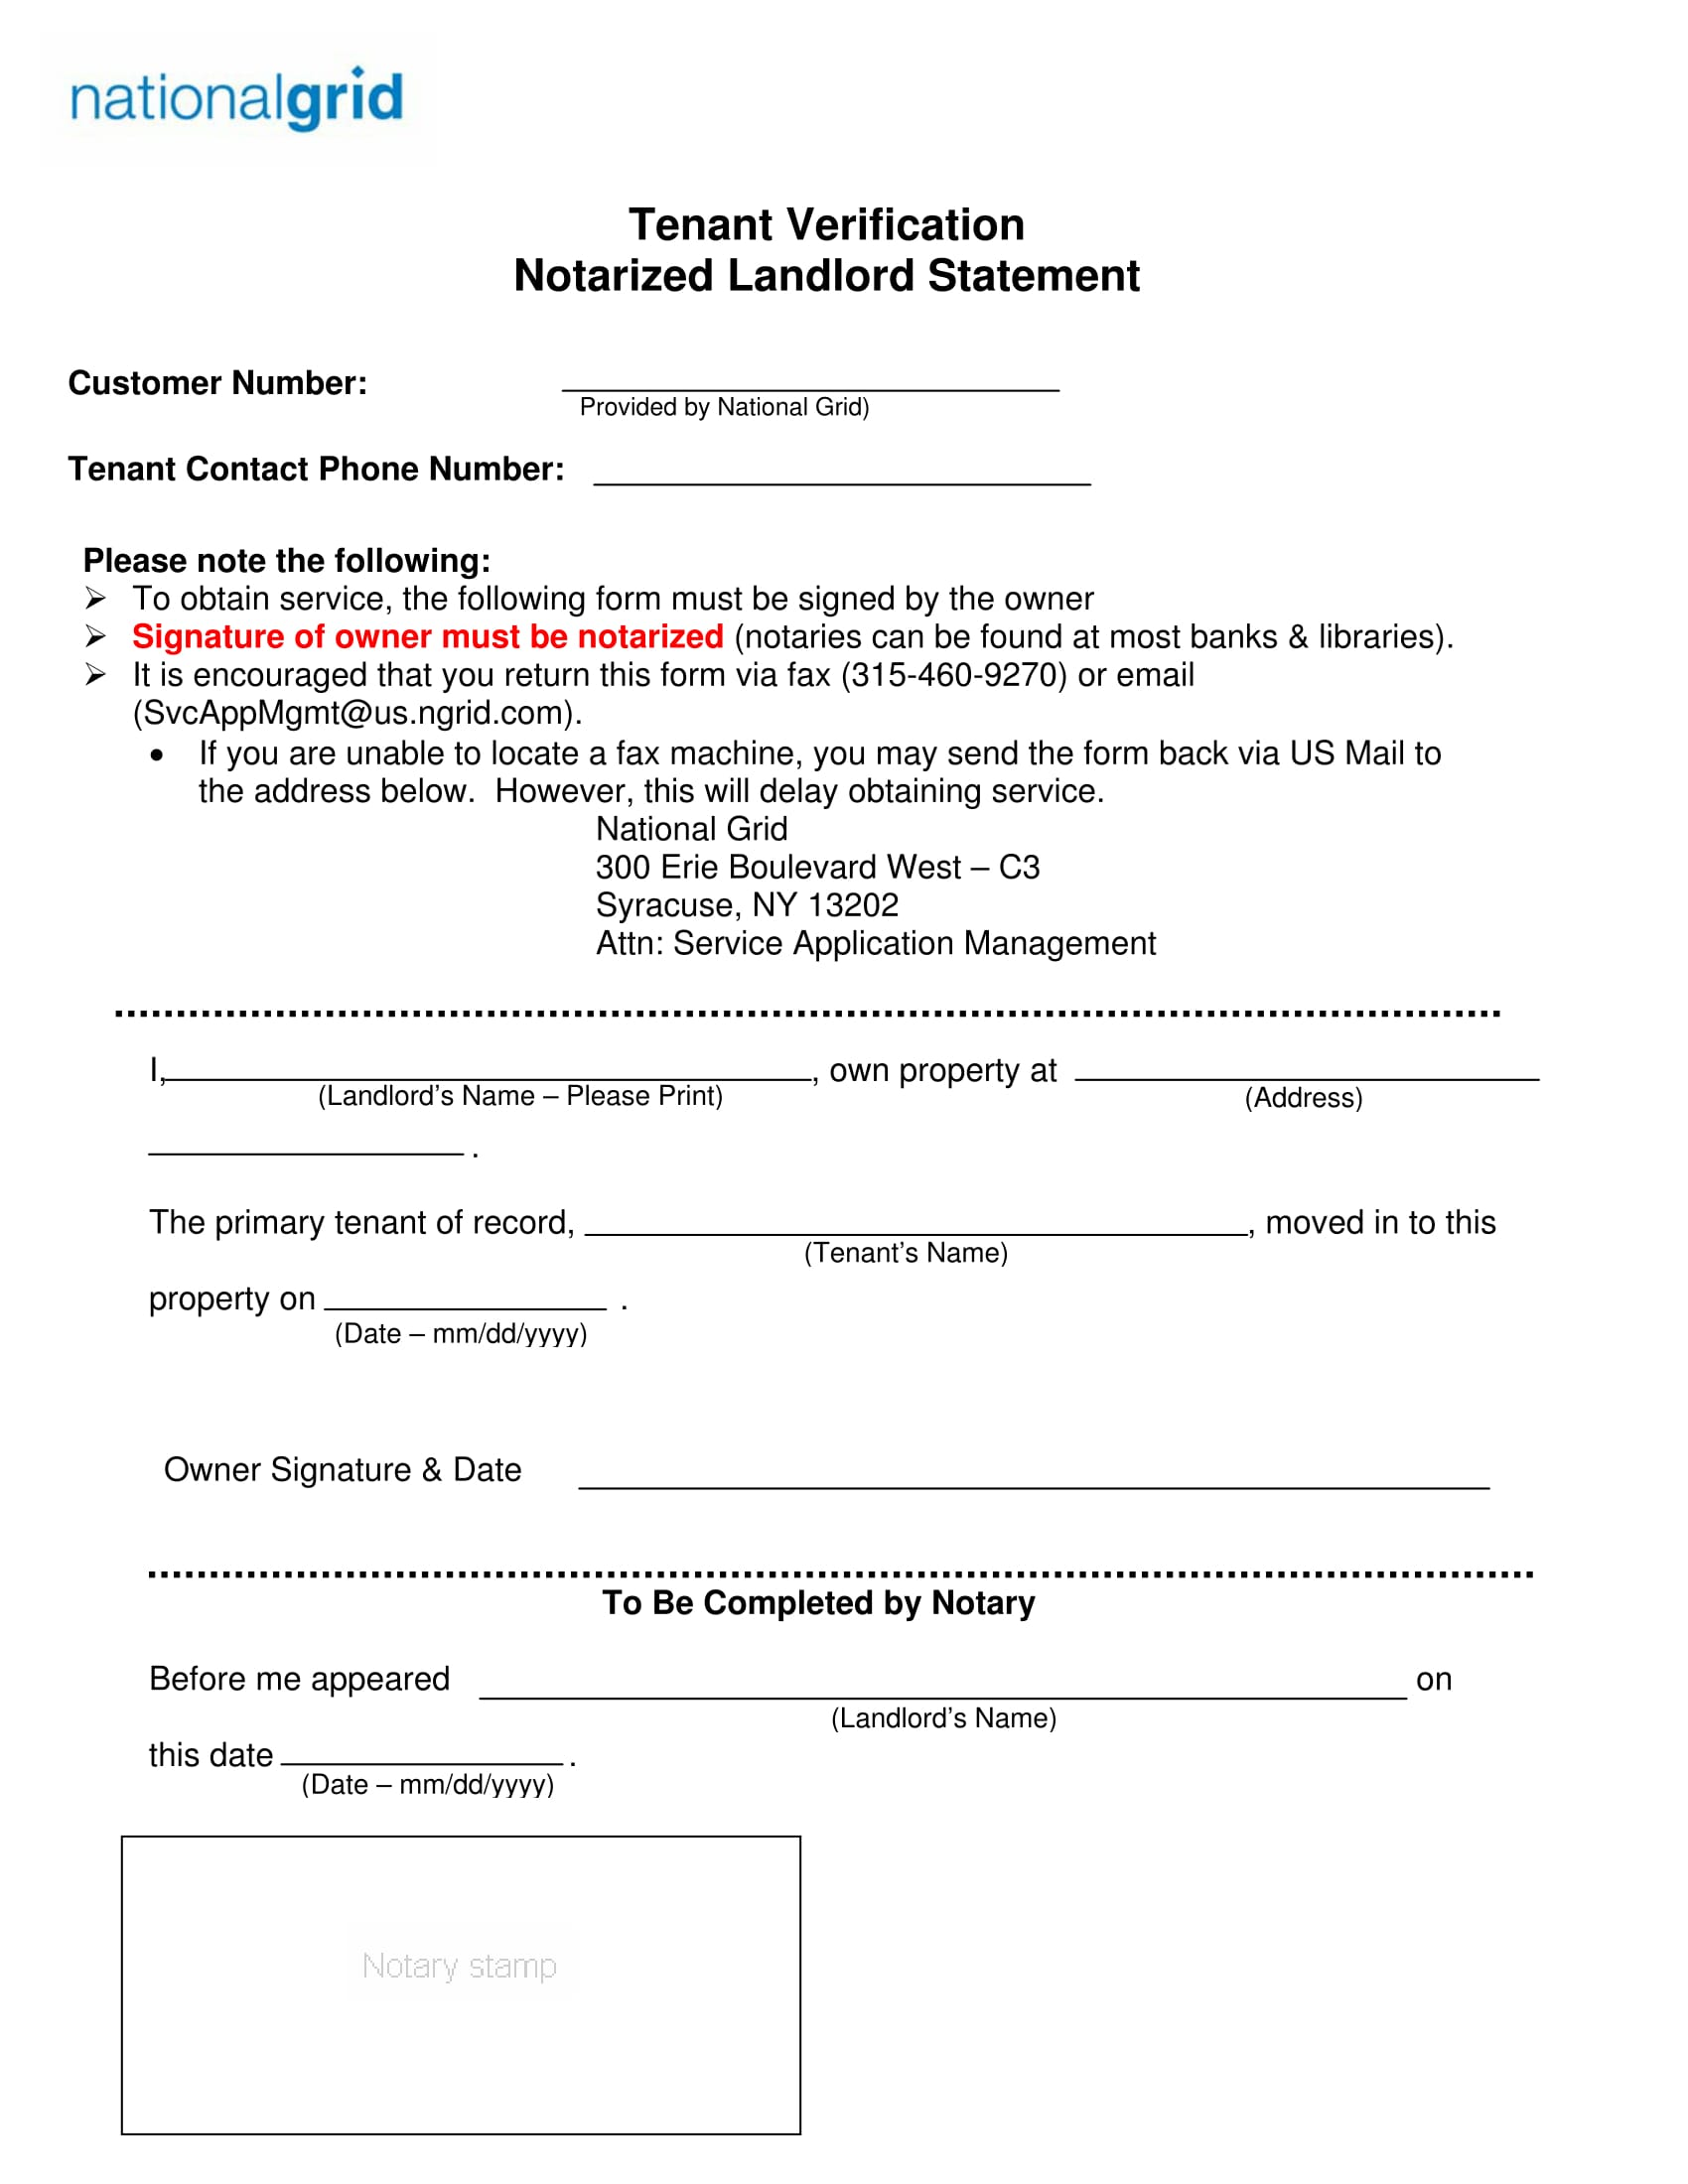 notarized landlord statement form 1